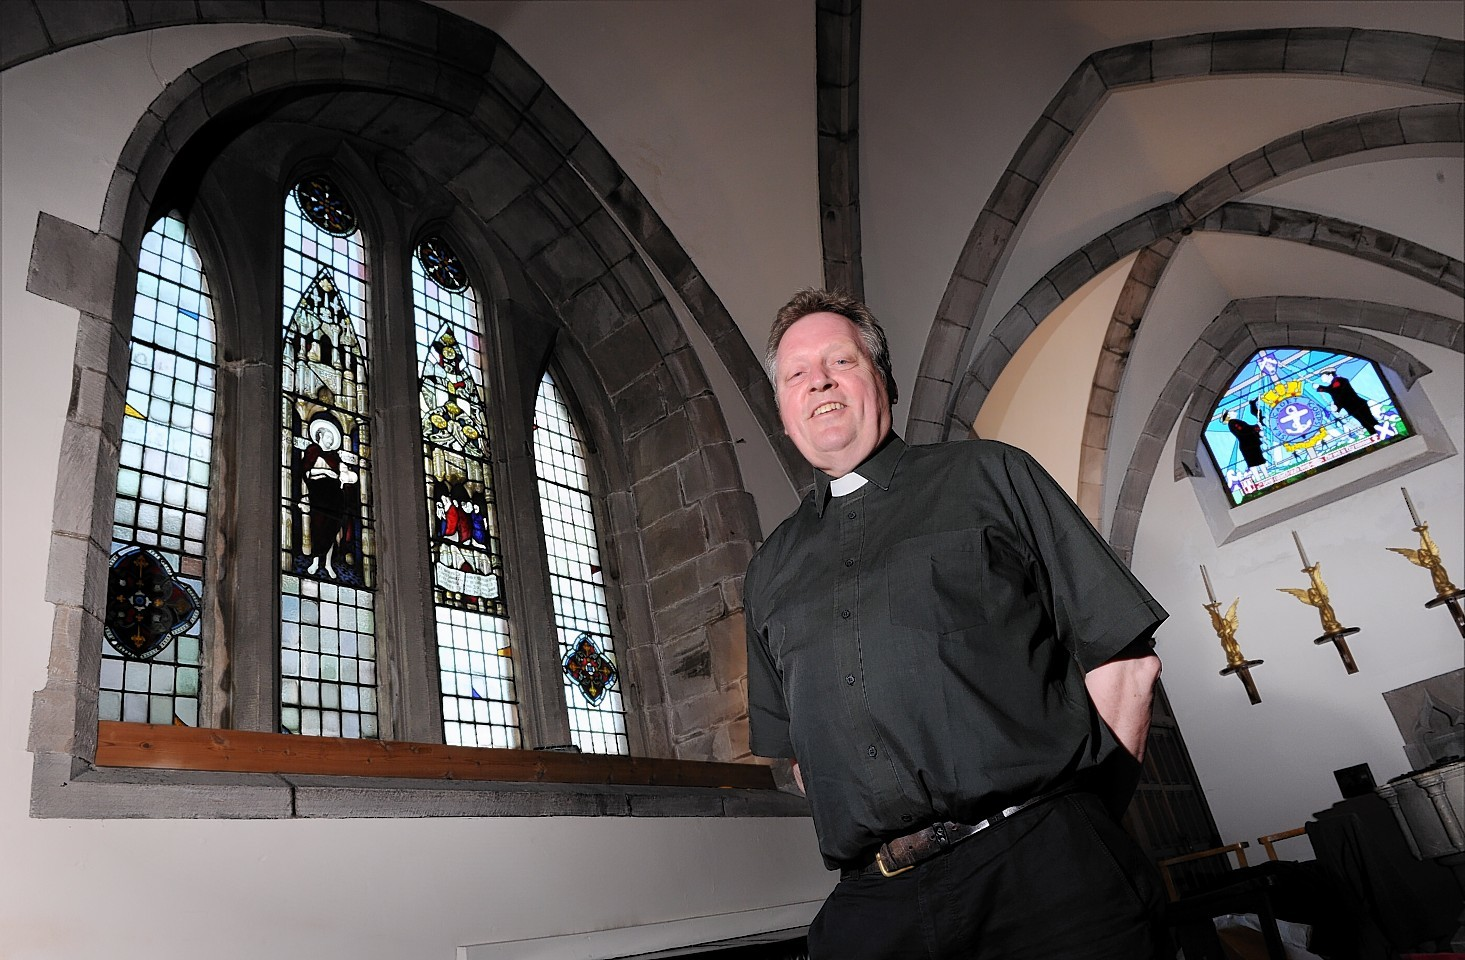 The Very Reverend Canon Emsley Nimmo